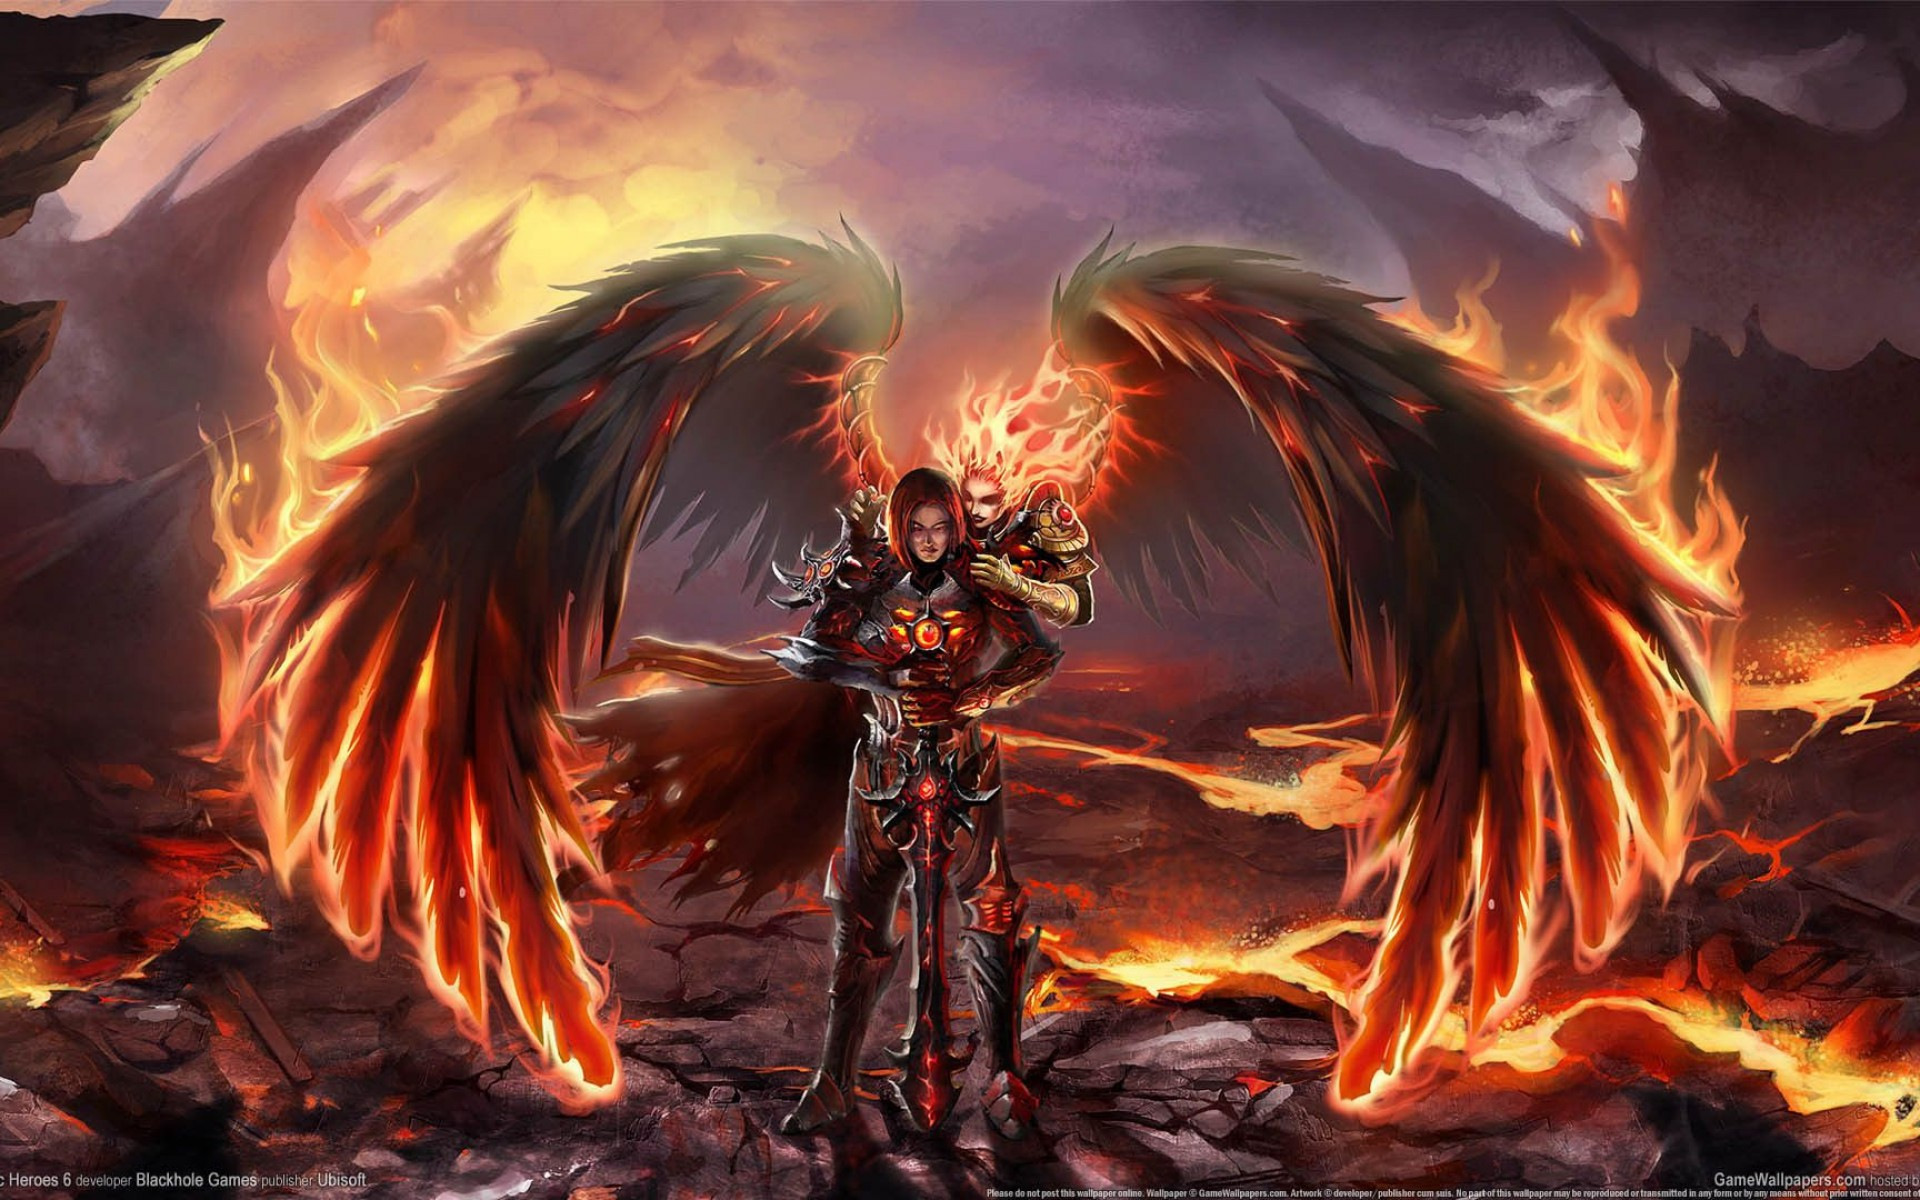 Heroes-Of-Might-And-Magic-Wings-Of-Fire-Phoenix-Wings-Flame-1200x1920.jpg